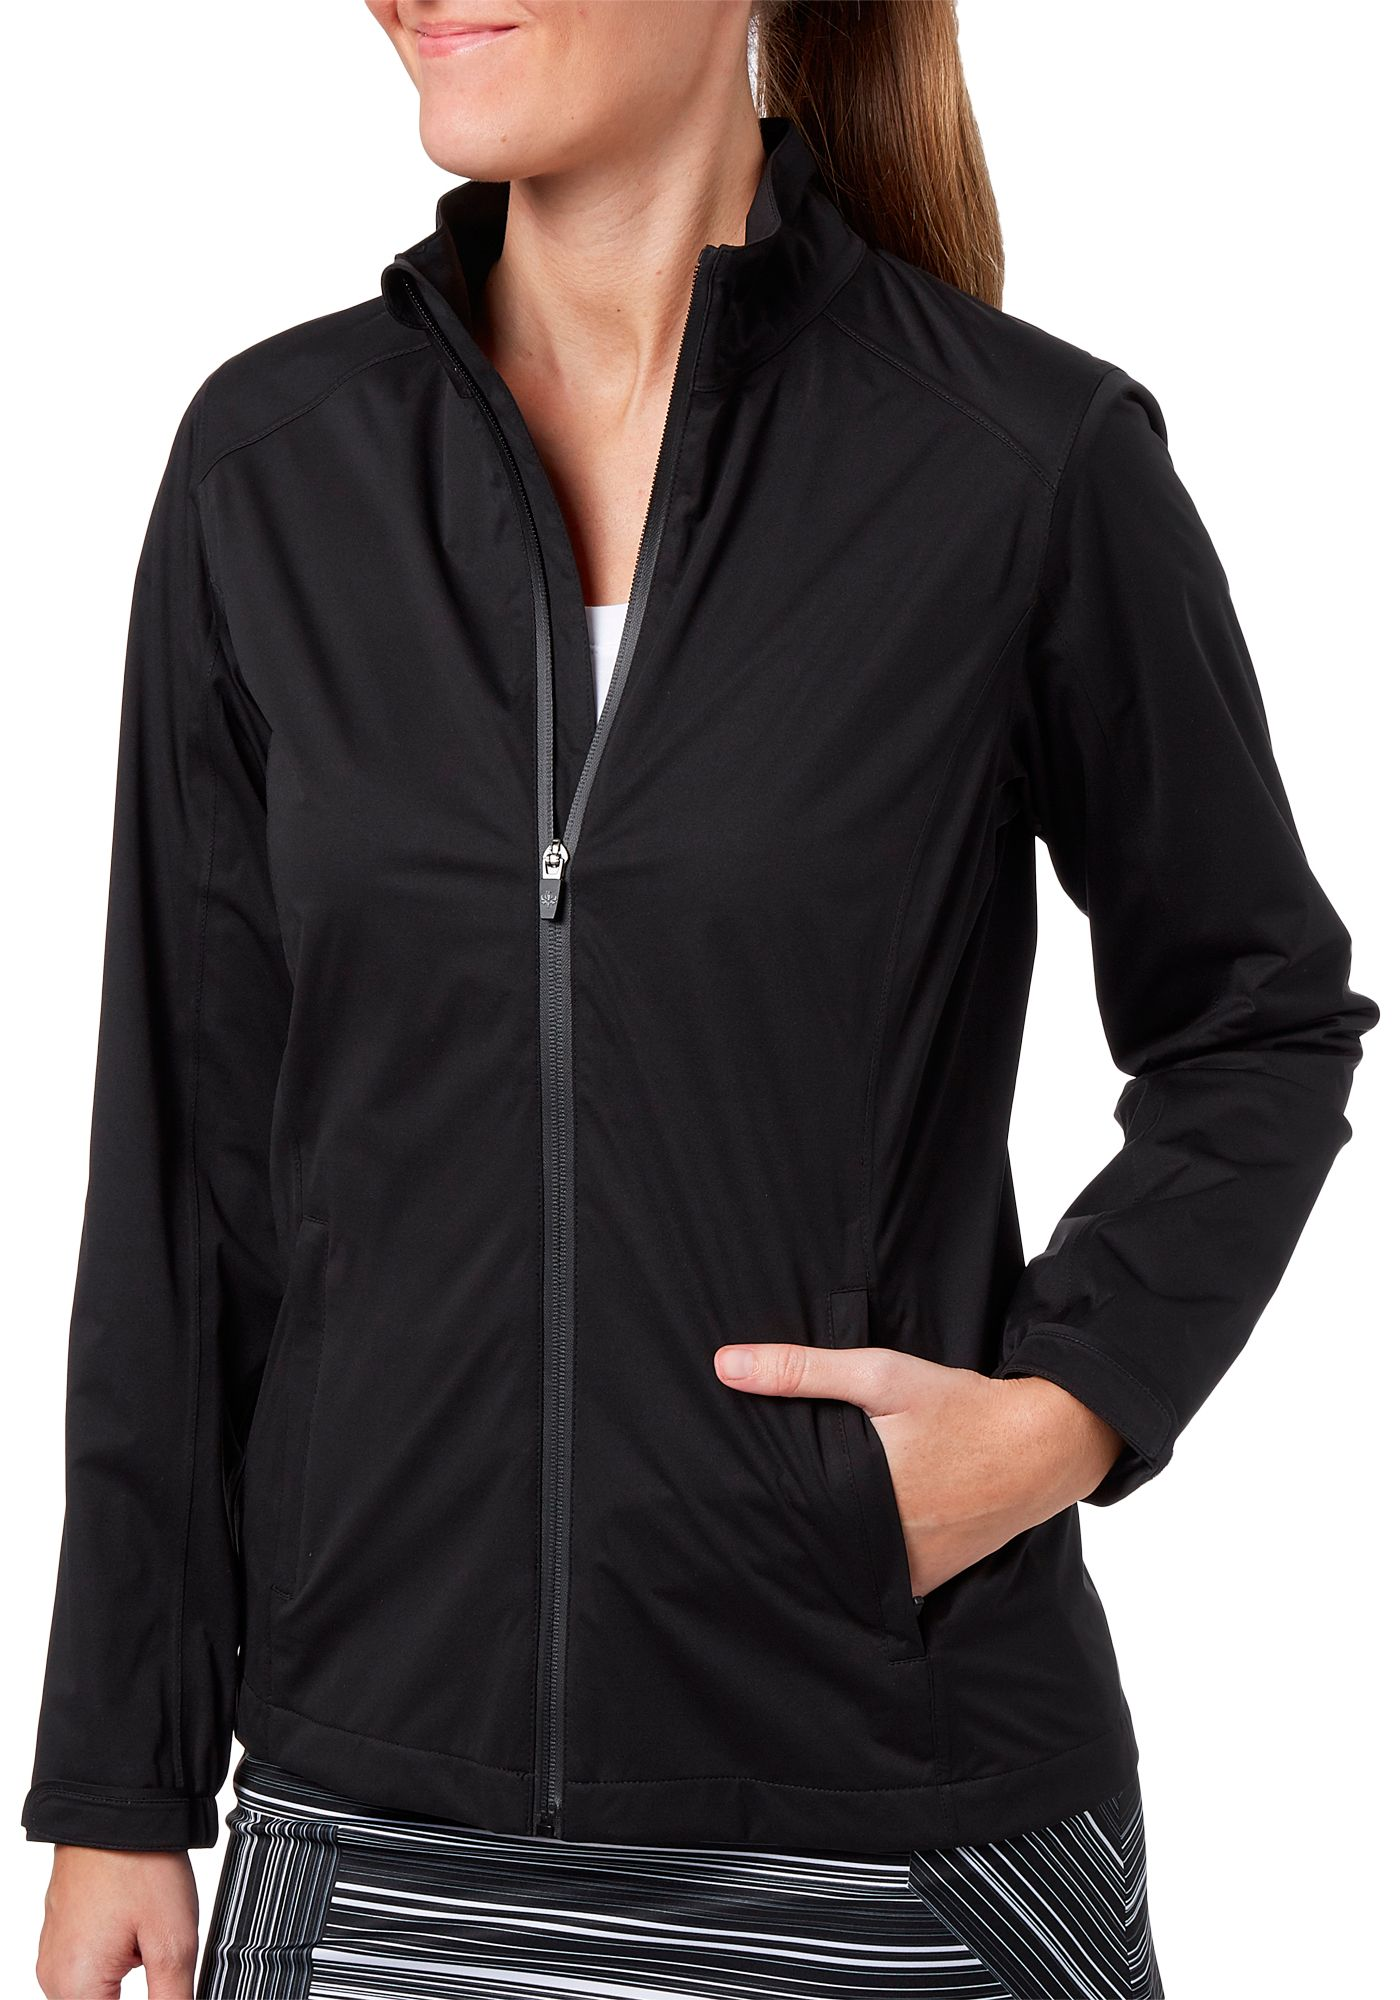 Lady Hagen Women's Best Golf Rain Jacket